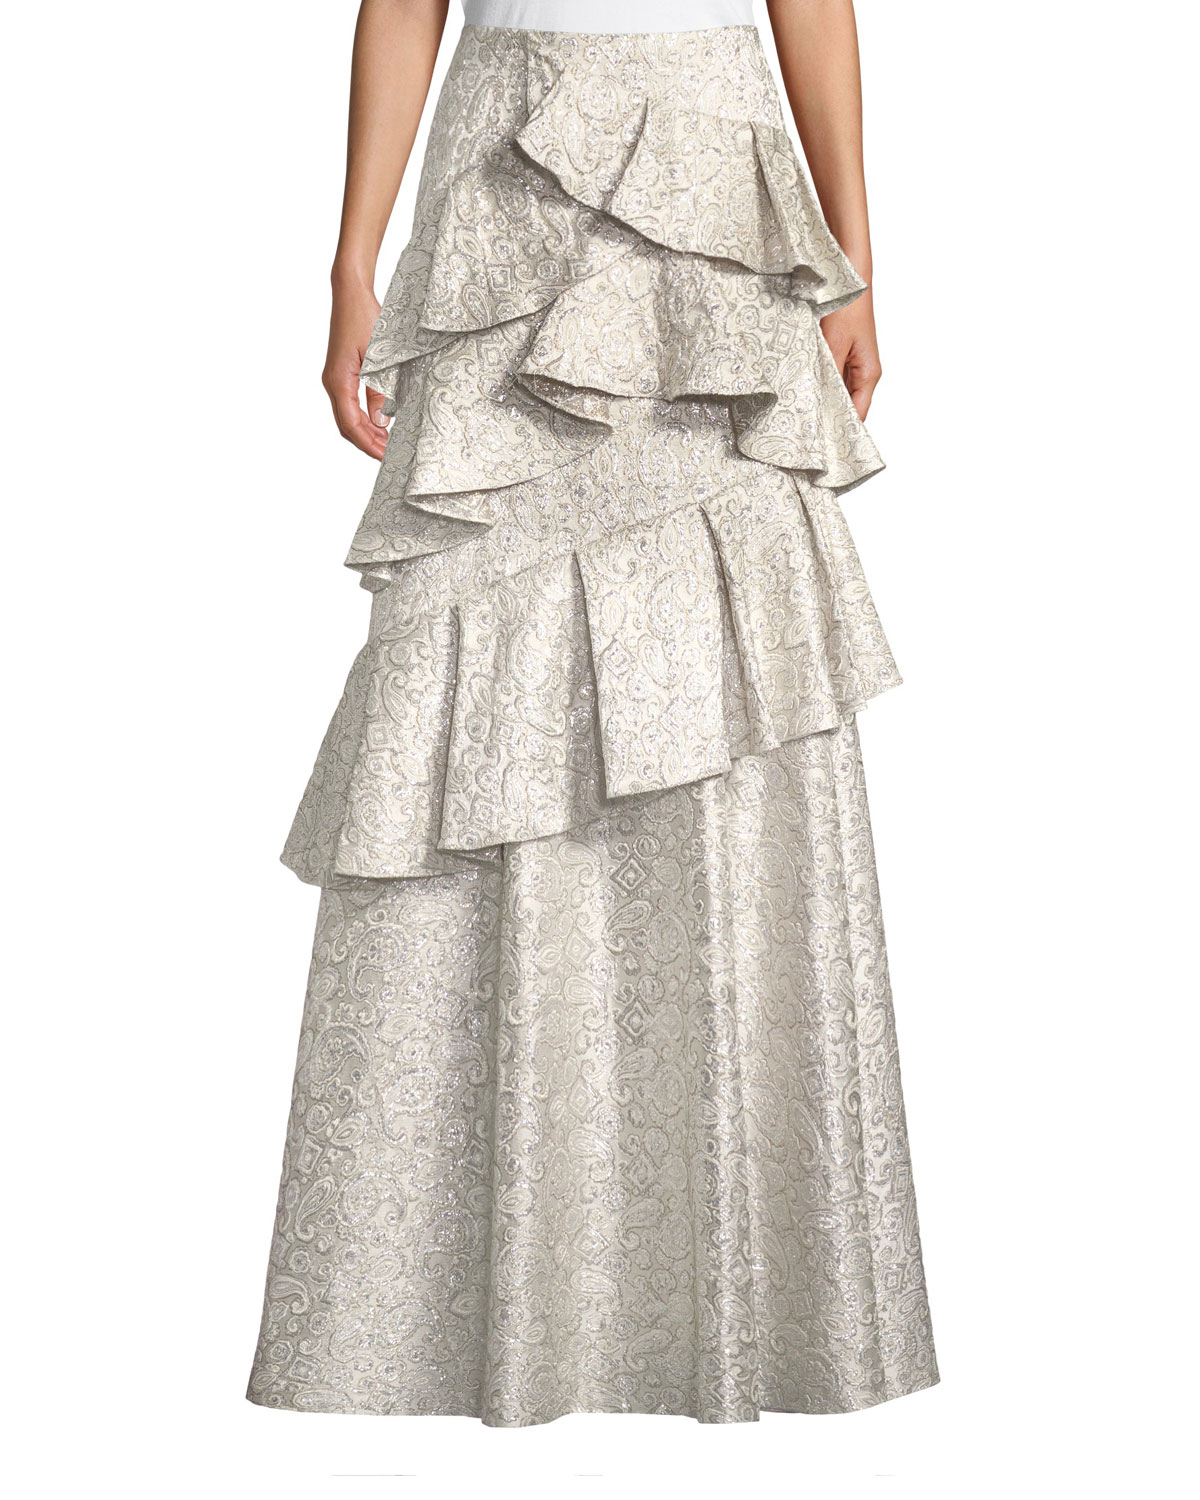 Alice + Olivia Flossie Ruffle Tiered Ball Gown Skirt | Neiman Marcus